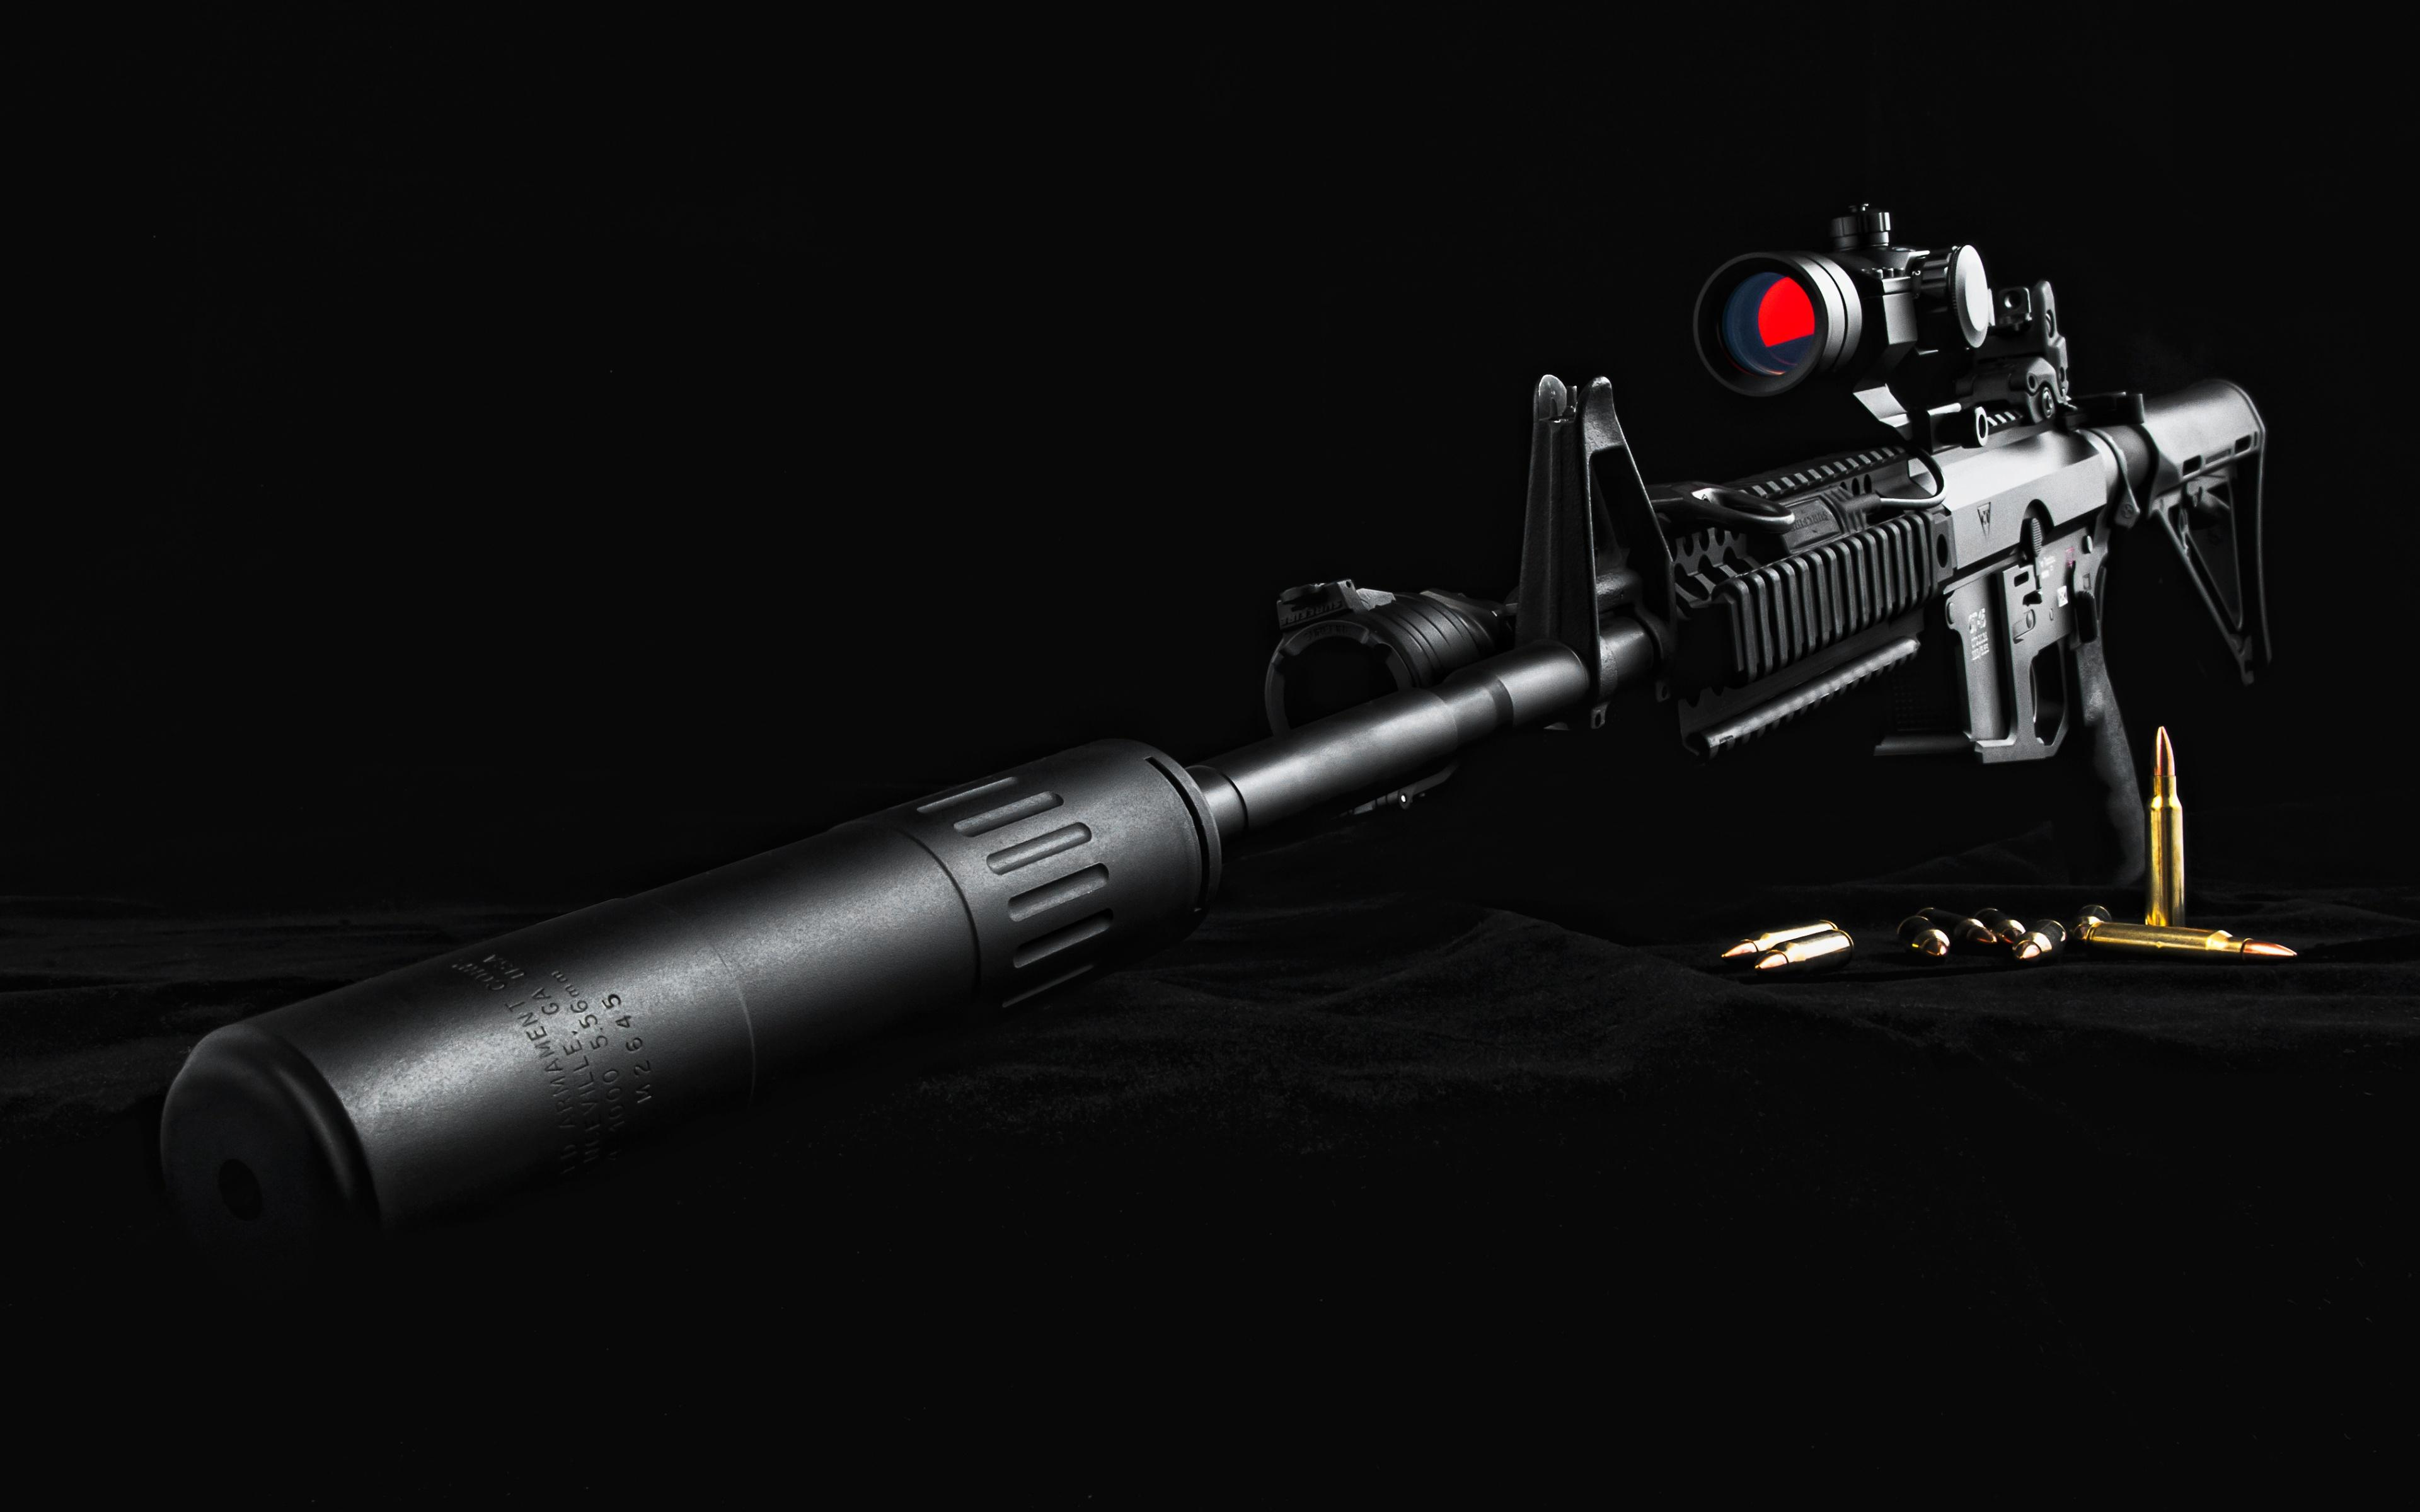 Sniper Rifle AR 15   Wallpaper 3840x2400